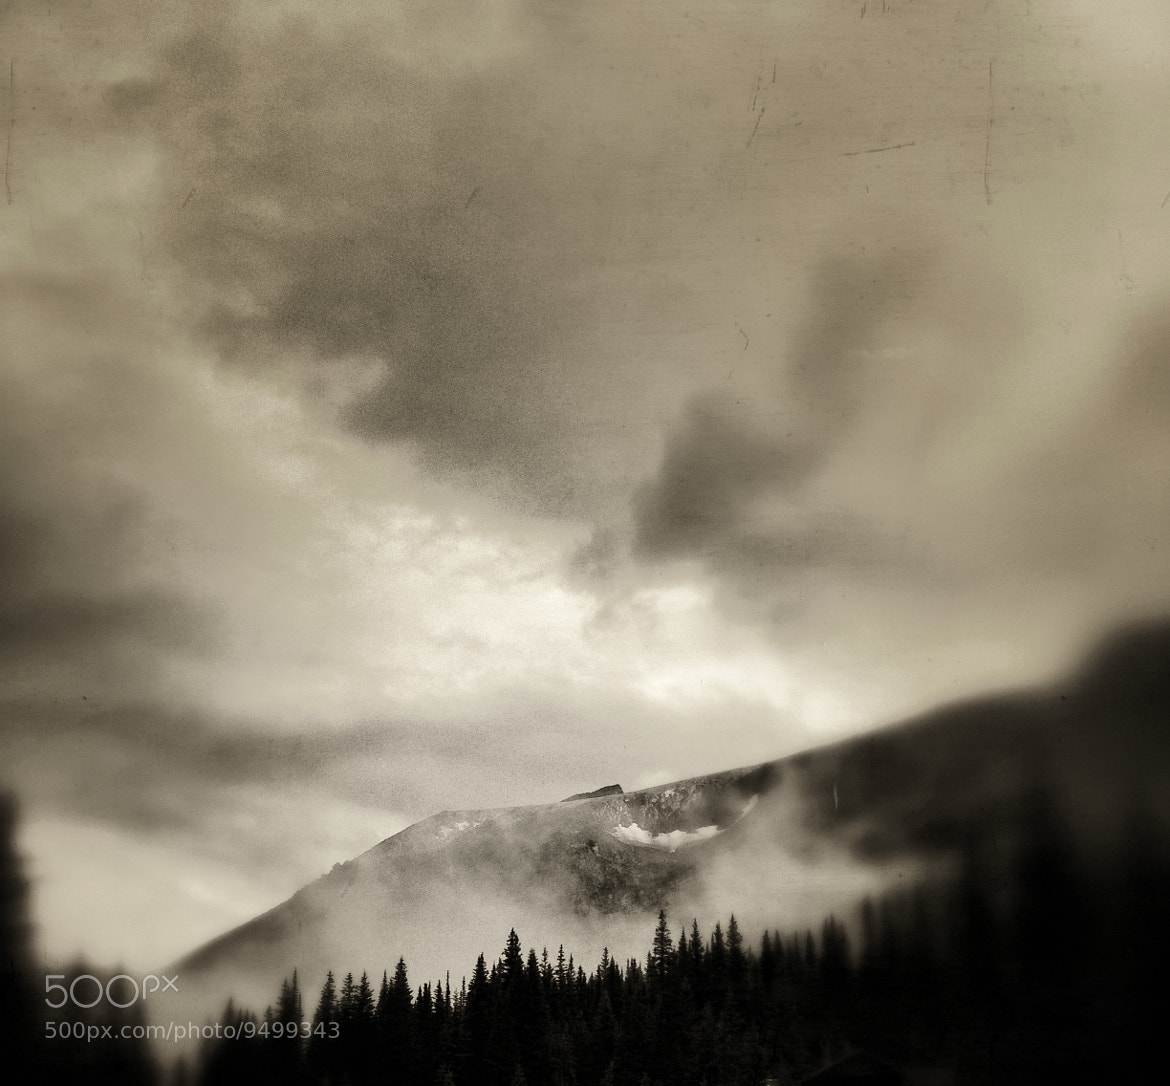 Photograph 0051-A by Justin Thornton on 500px